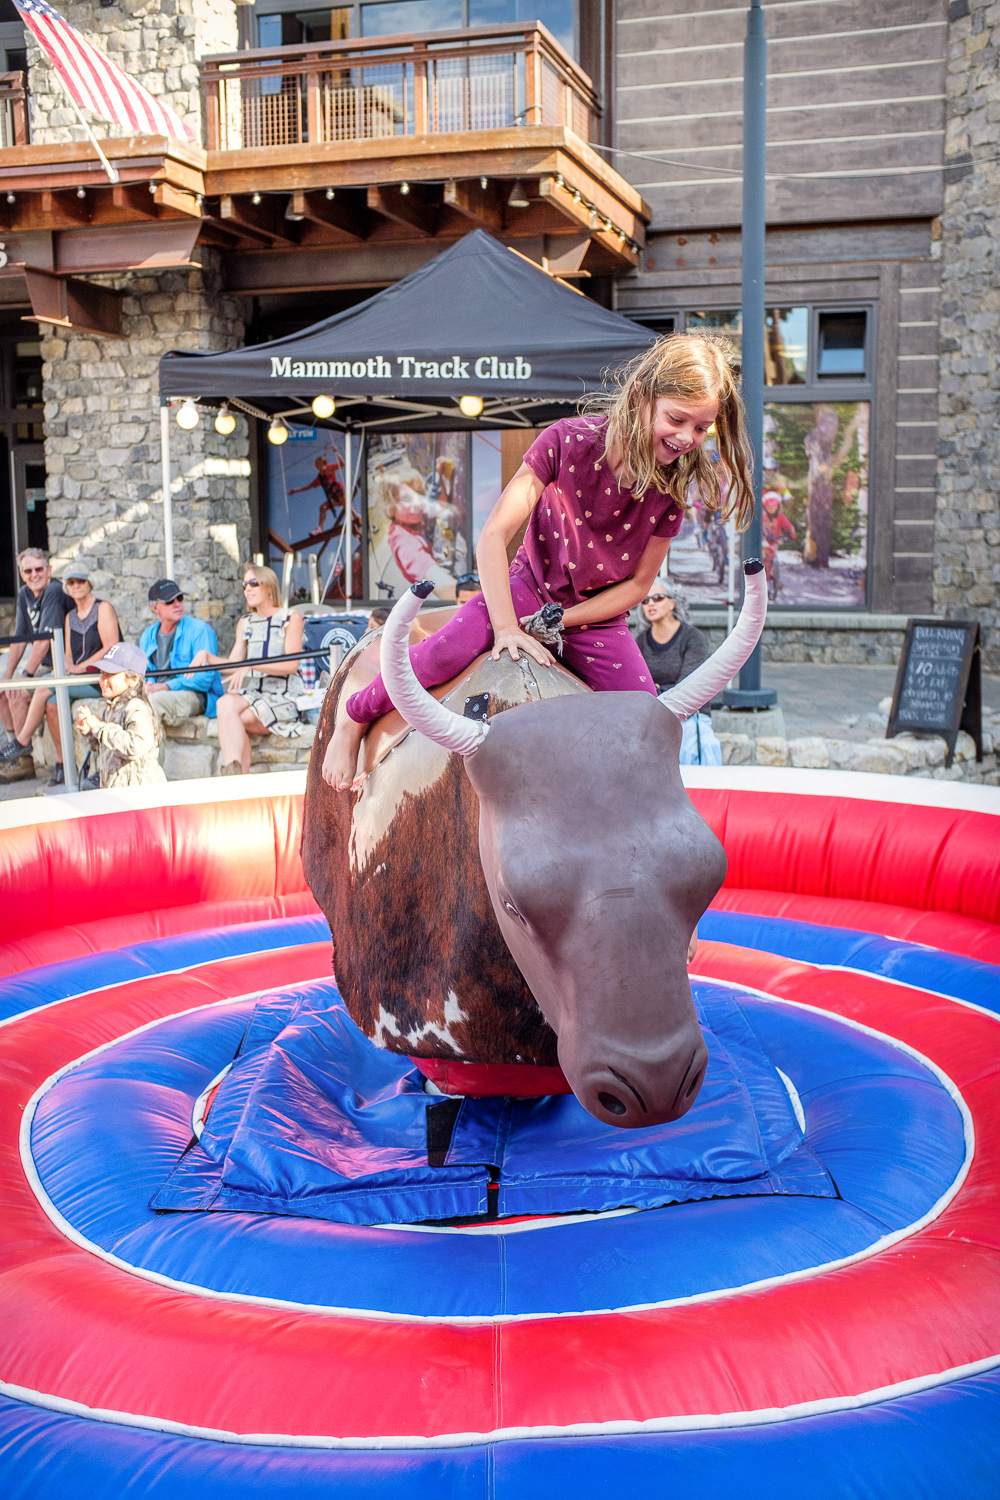 We decided to leave a day early and drive halfway to Mammoth Lakes, another one of our summer favorites. They were having an end-of-summer festival—along with mechanical bull rides. Ironically, it was Paige who had the courage to step into the ring at first and Quinn reluctantly followed after her.